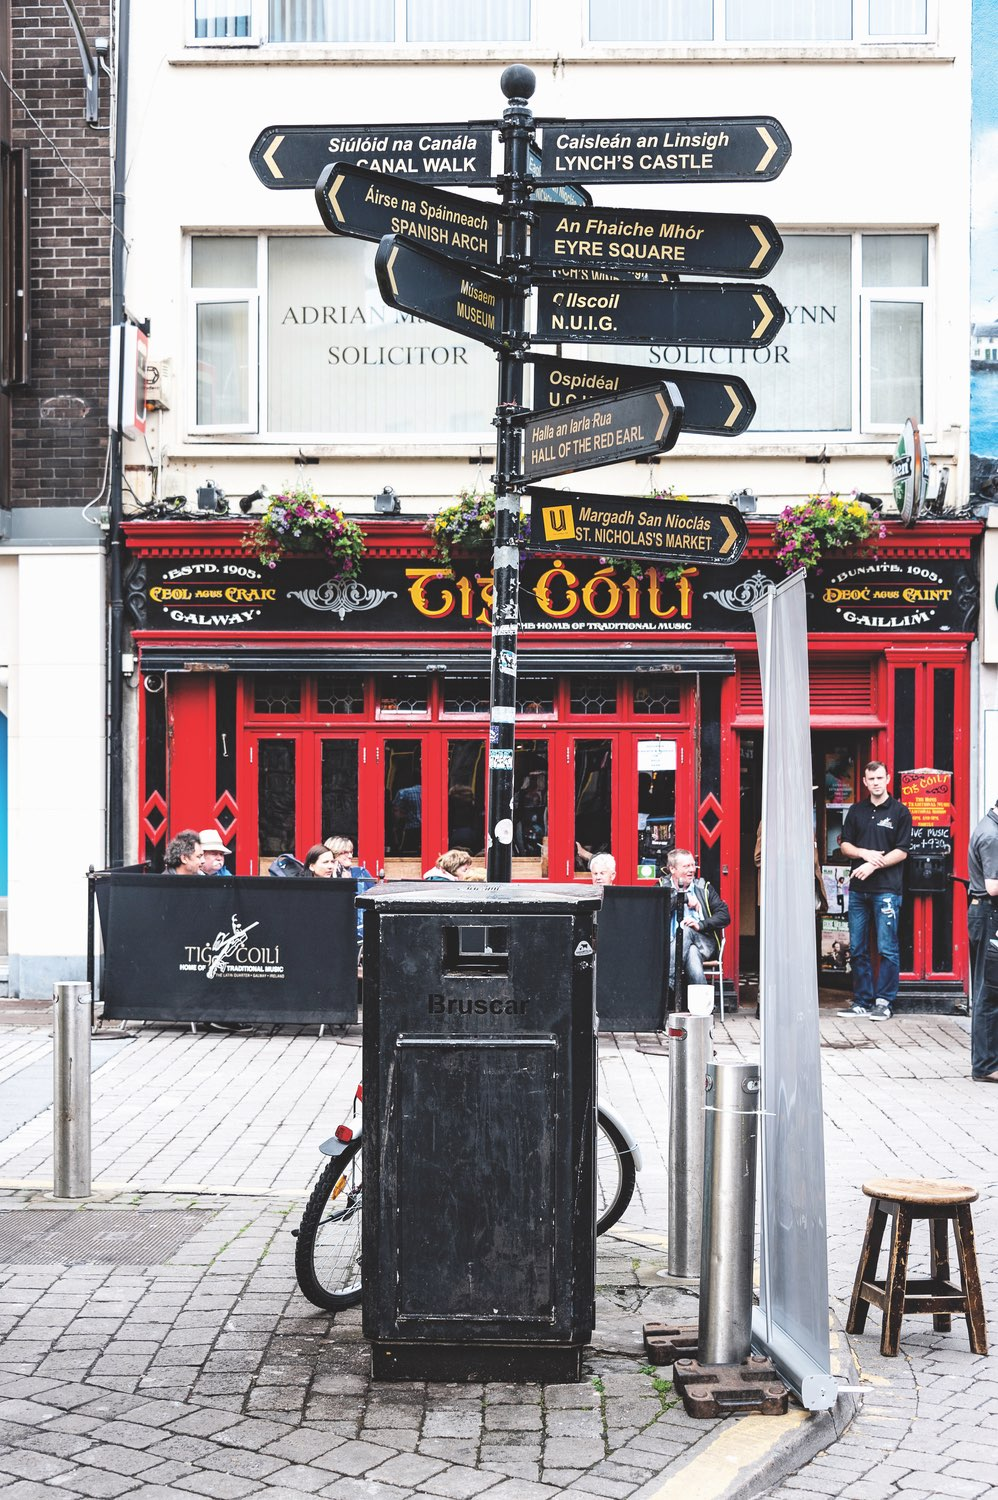 Tig Cóilí on Mainguard Street is one of many laid-back pubs in Galway perfect for enjoying a pint on your way to or from Connemara. Photo by Rolf G Wackenberg / Shutterstock